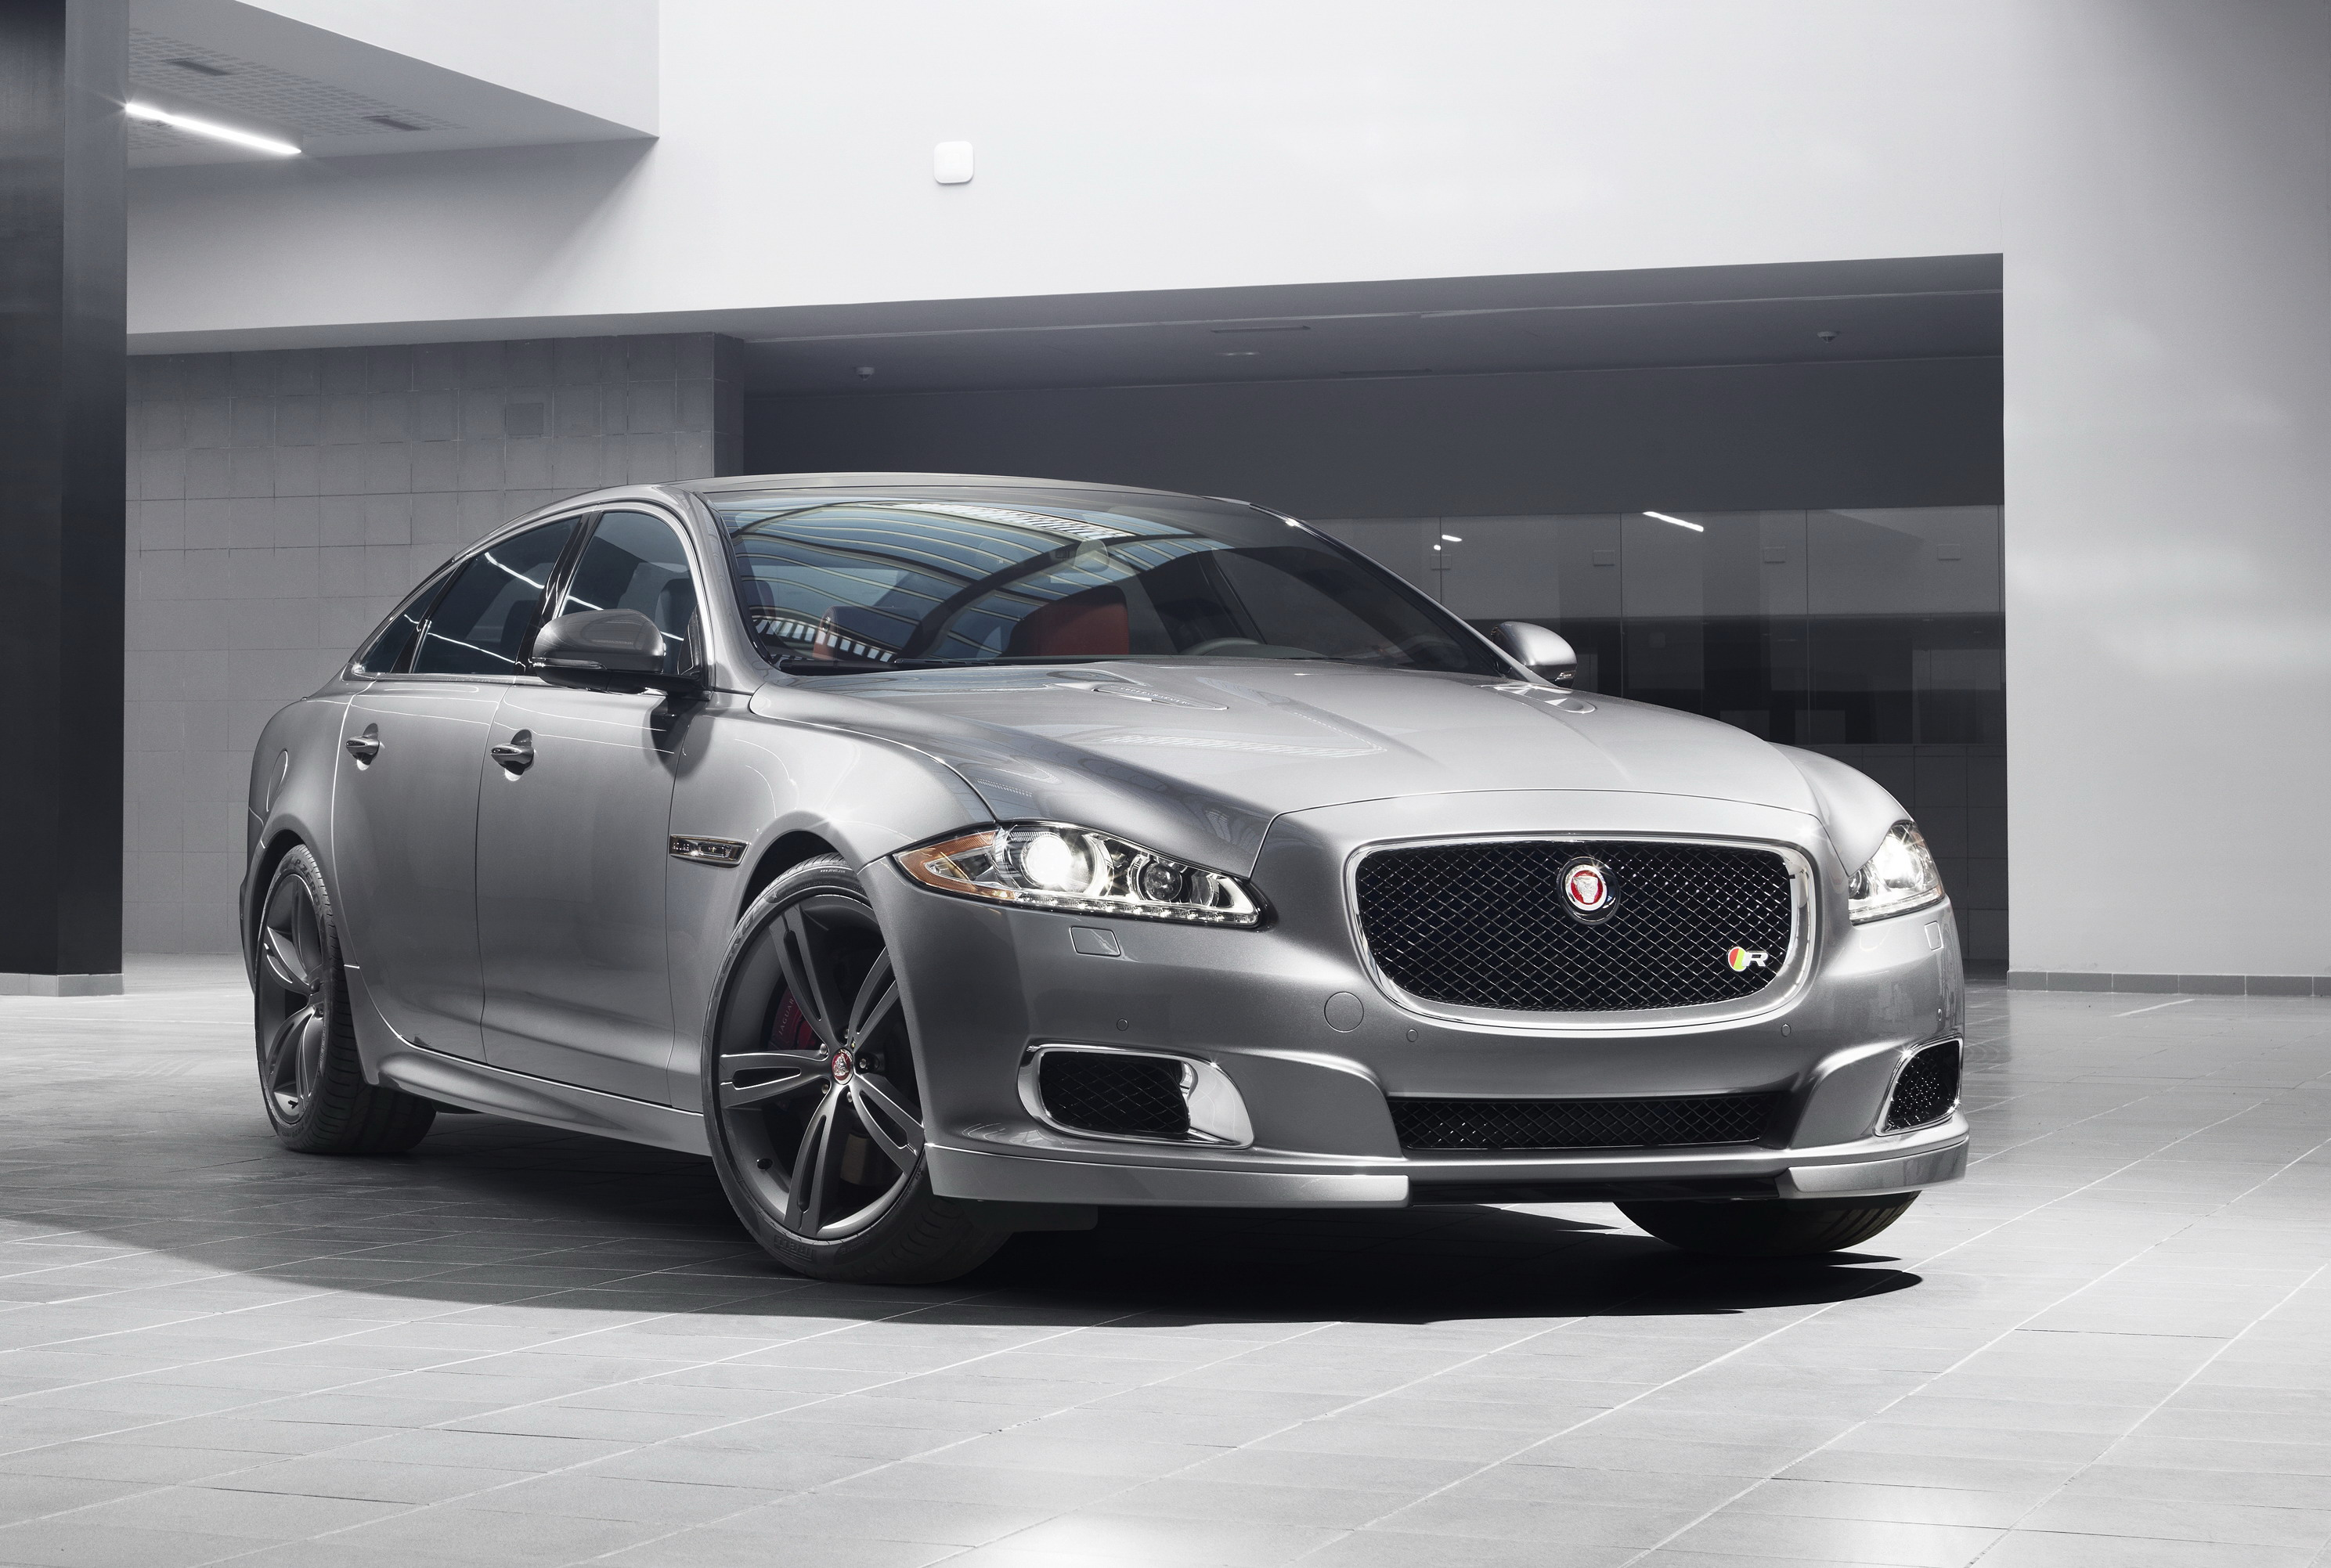 Jaguar Cars For Sale >> 2014 Jaguar XJR | Top Speed